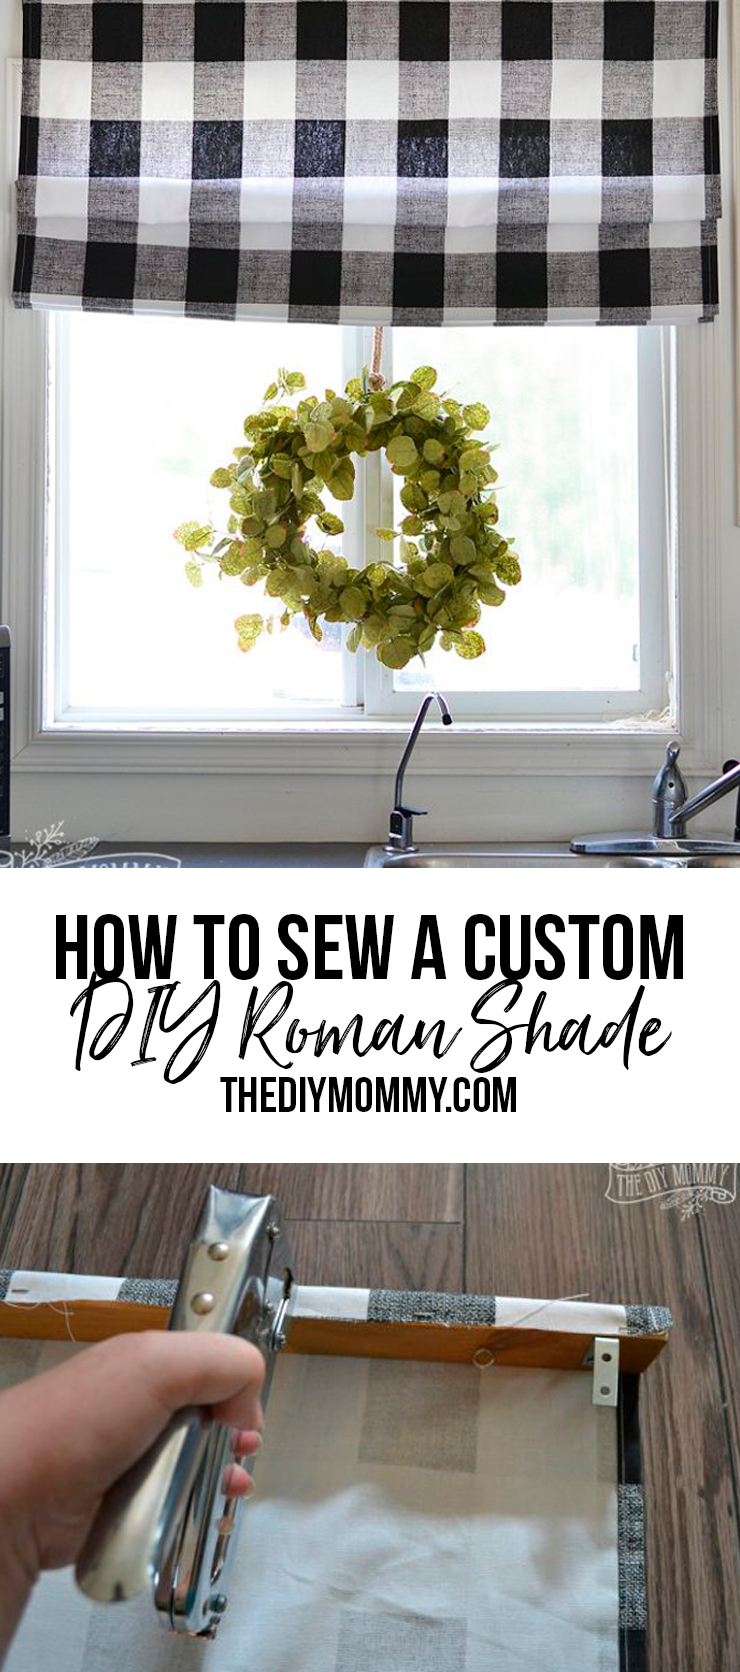 Sew a DIY Roman Shade - Printable instructions and material list included.